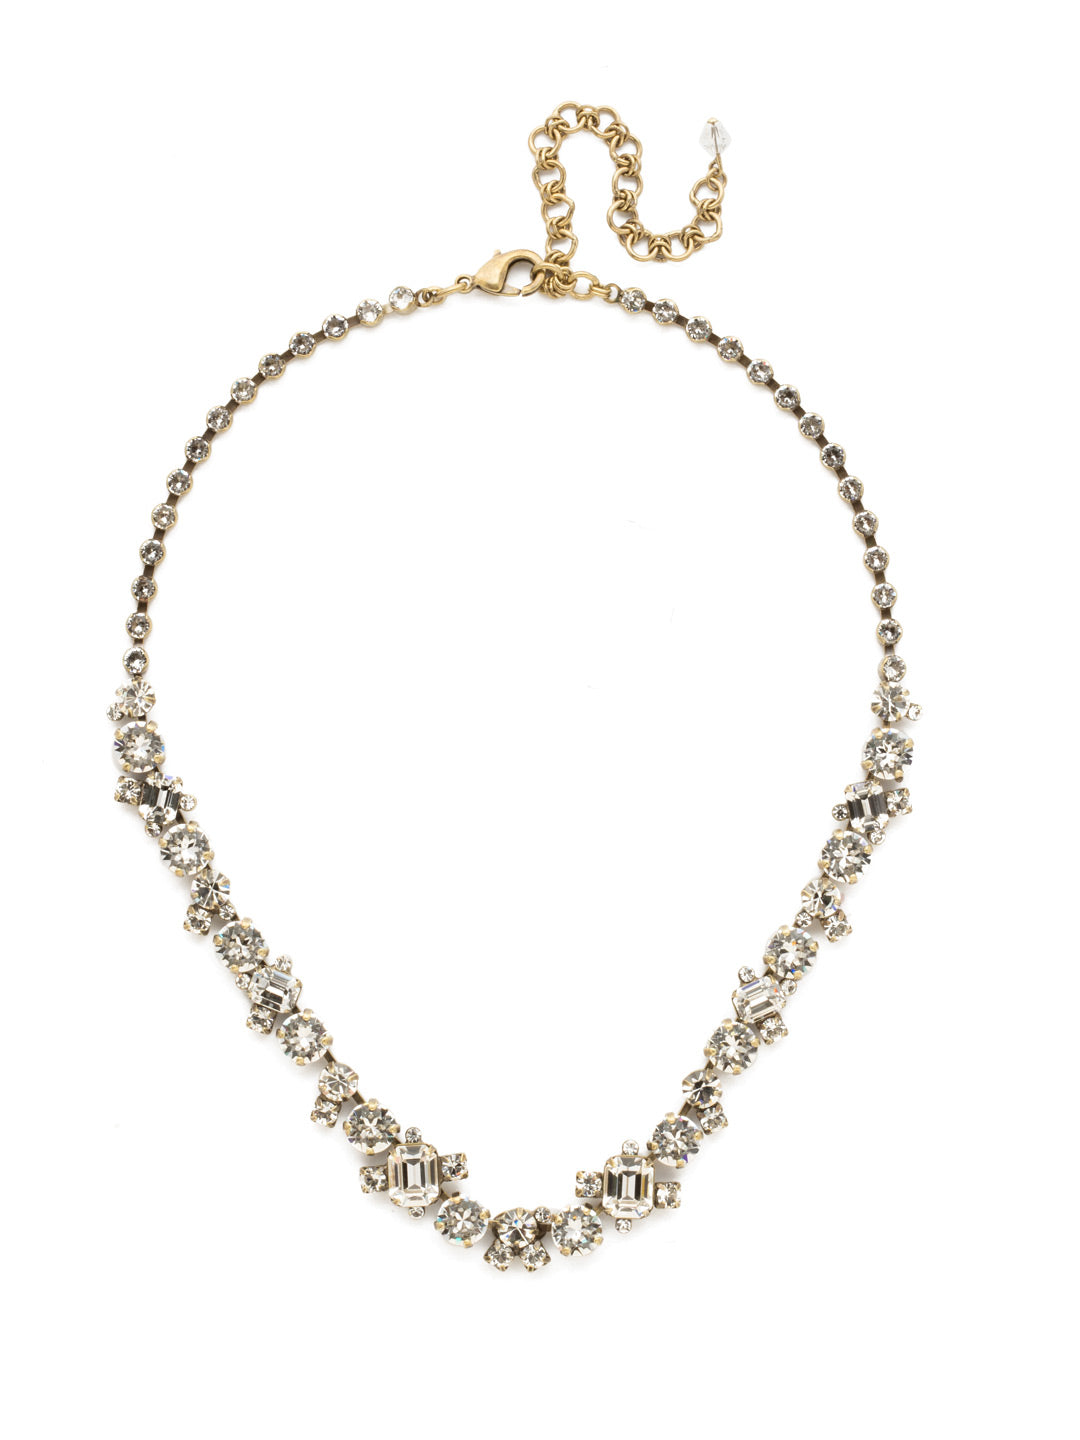 Glittering Multi-Cut Crystal Necklace - NCF6AGCRY